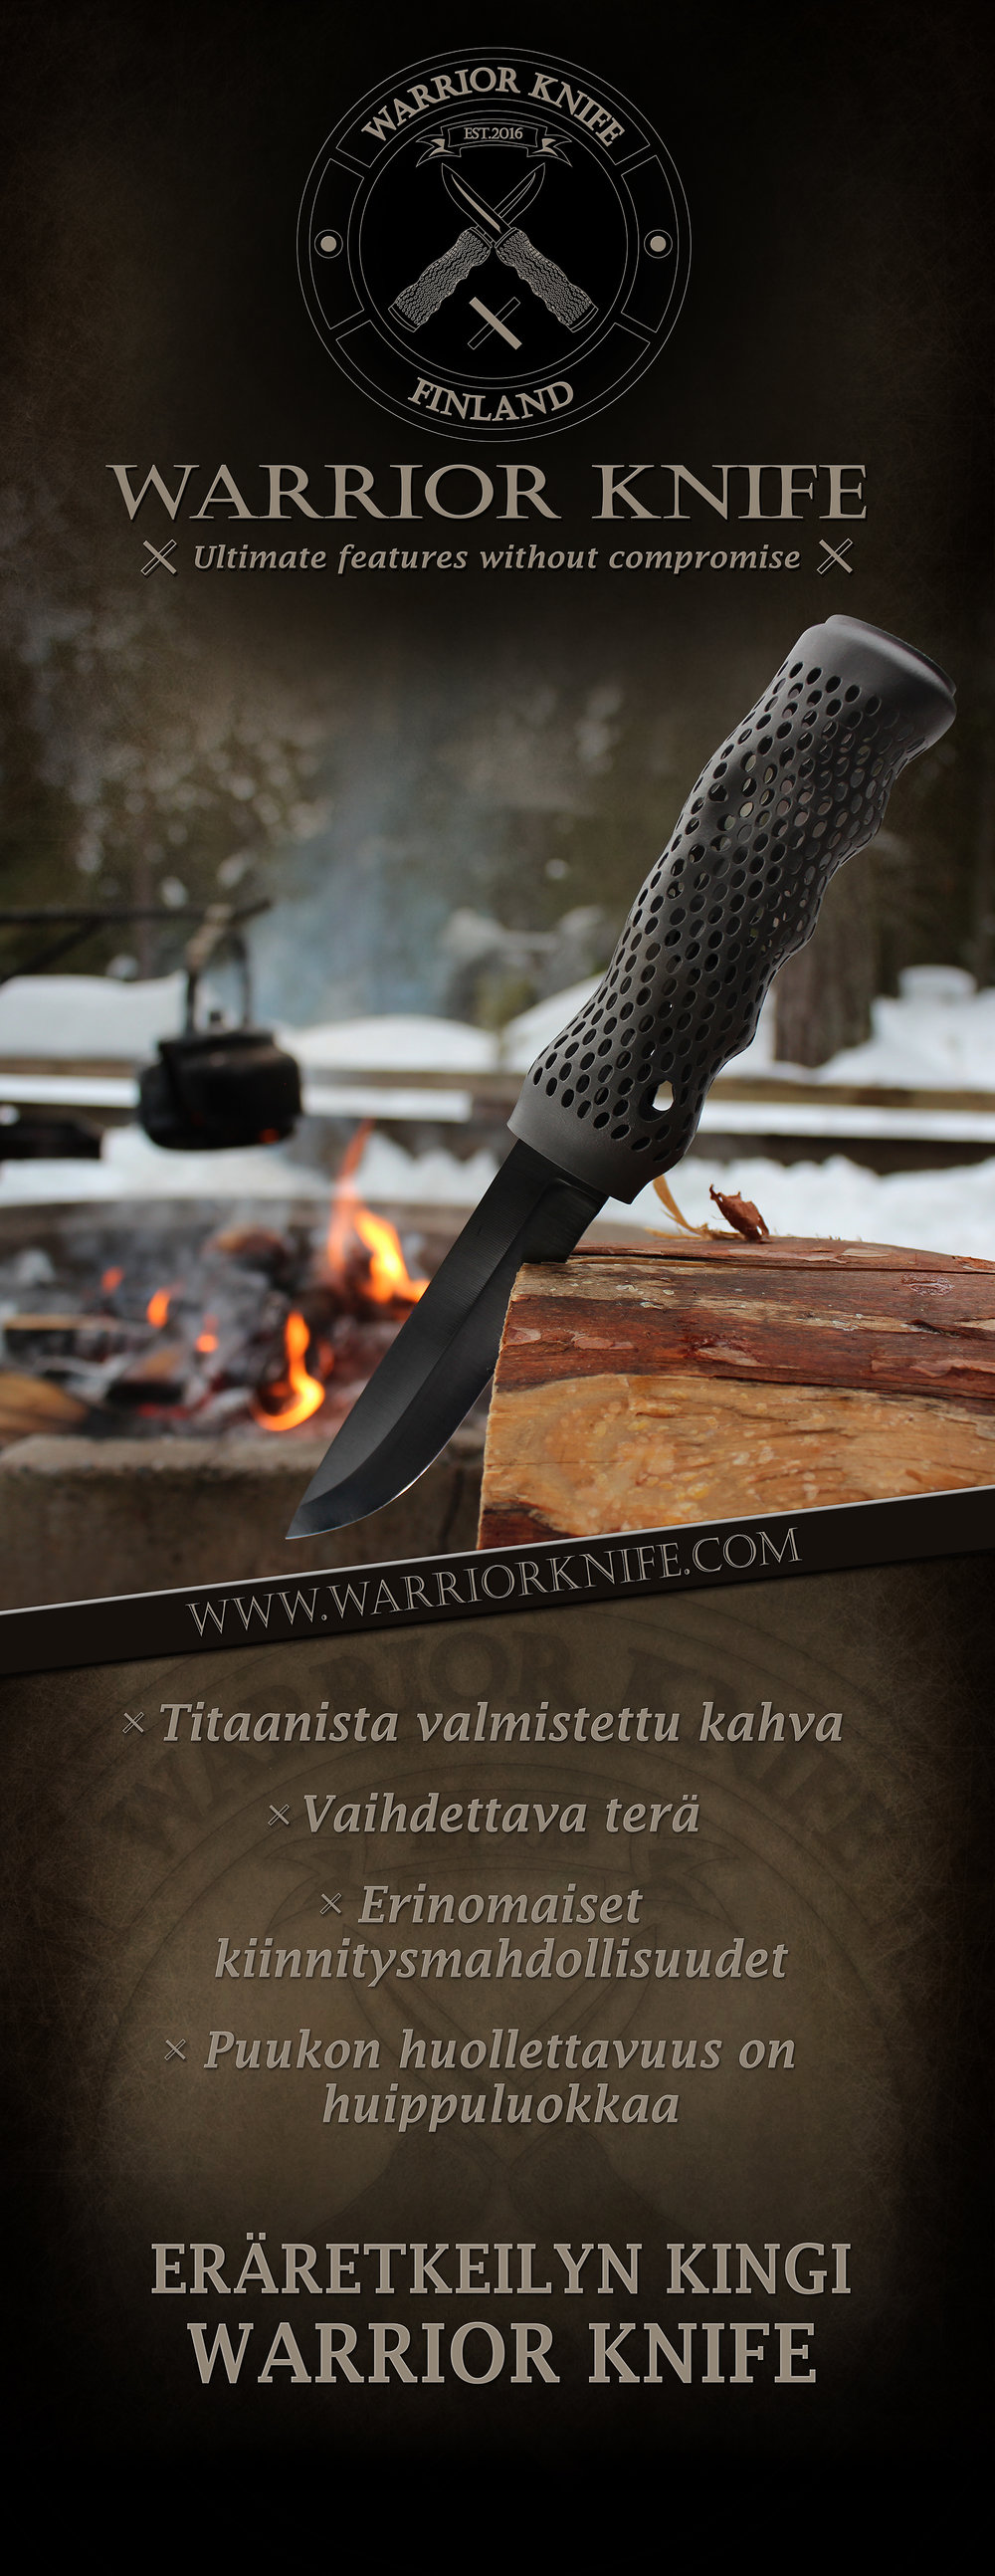 Warrior Knife_roll up erämessut 2018.jpg